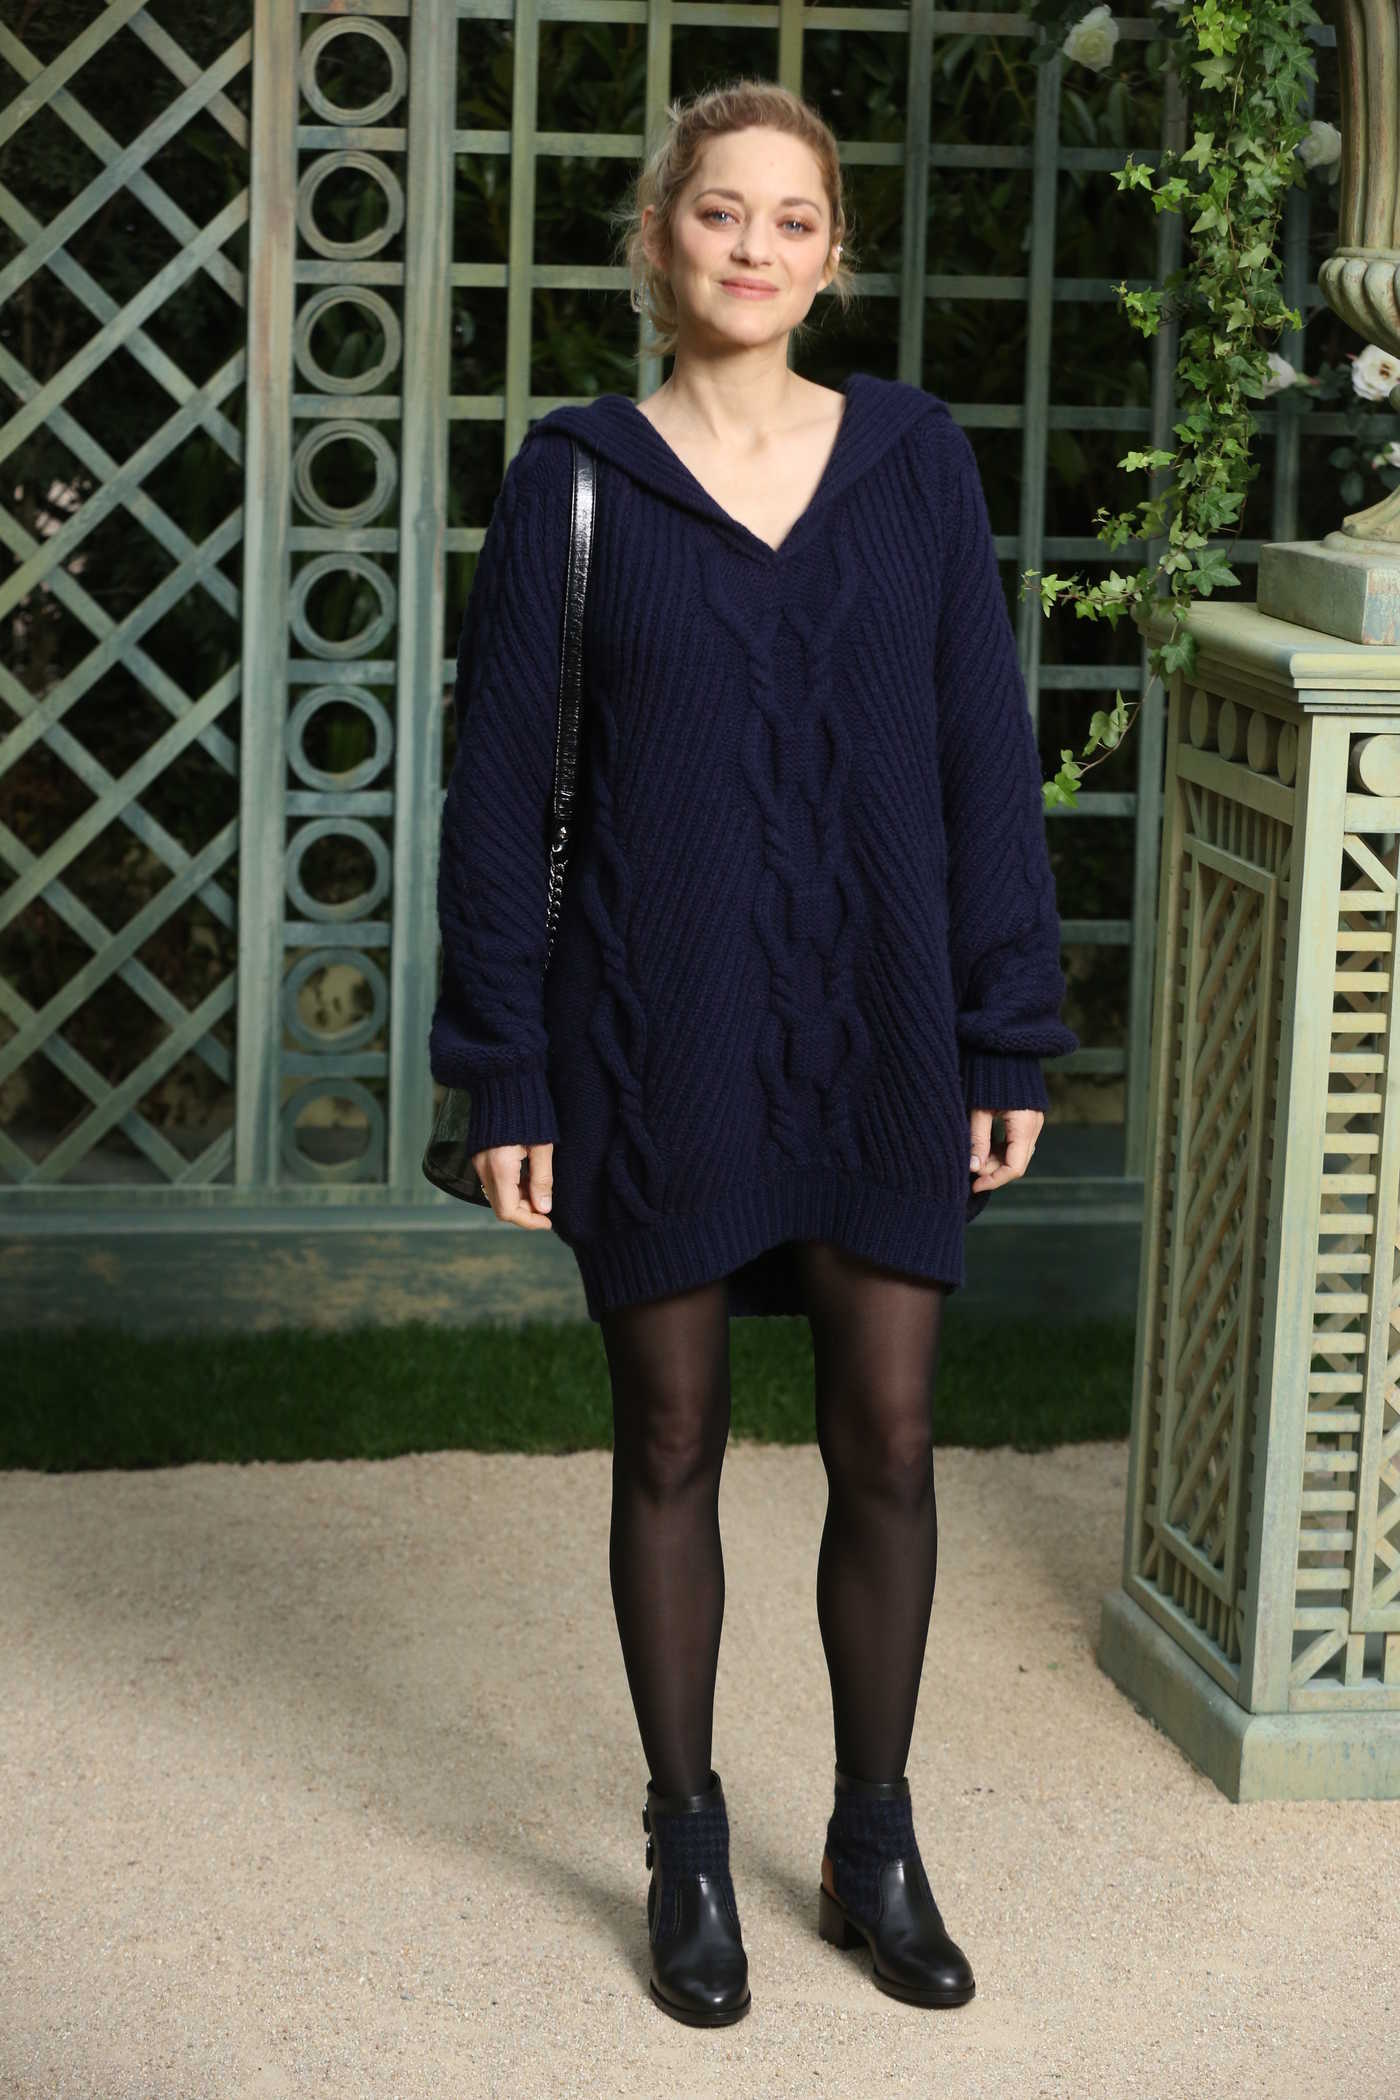 Marion Cotillard at the Chanel Haute Couture 2018 Show During the Paris Fashion Week in Paris 01/23/2018